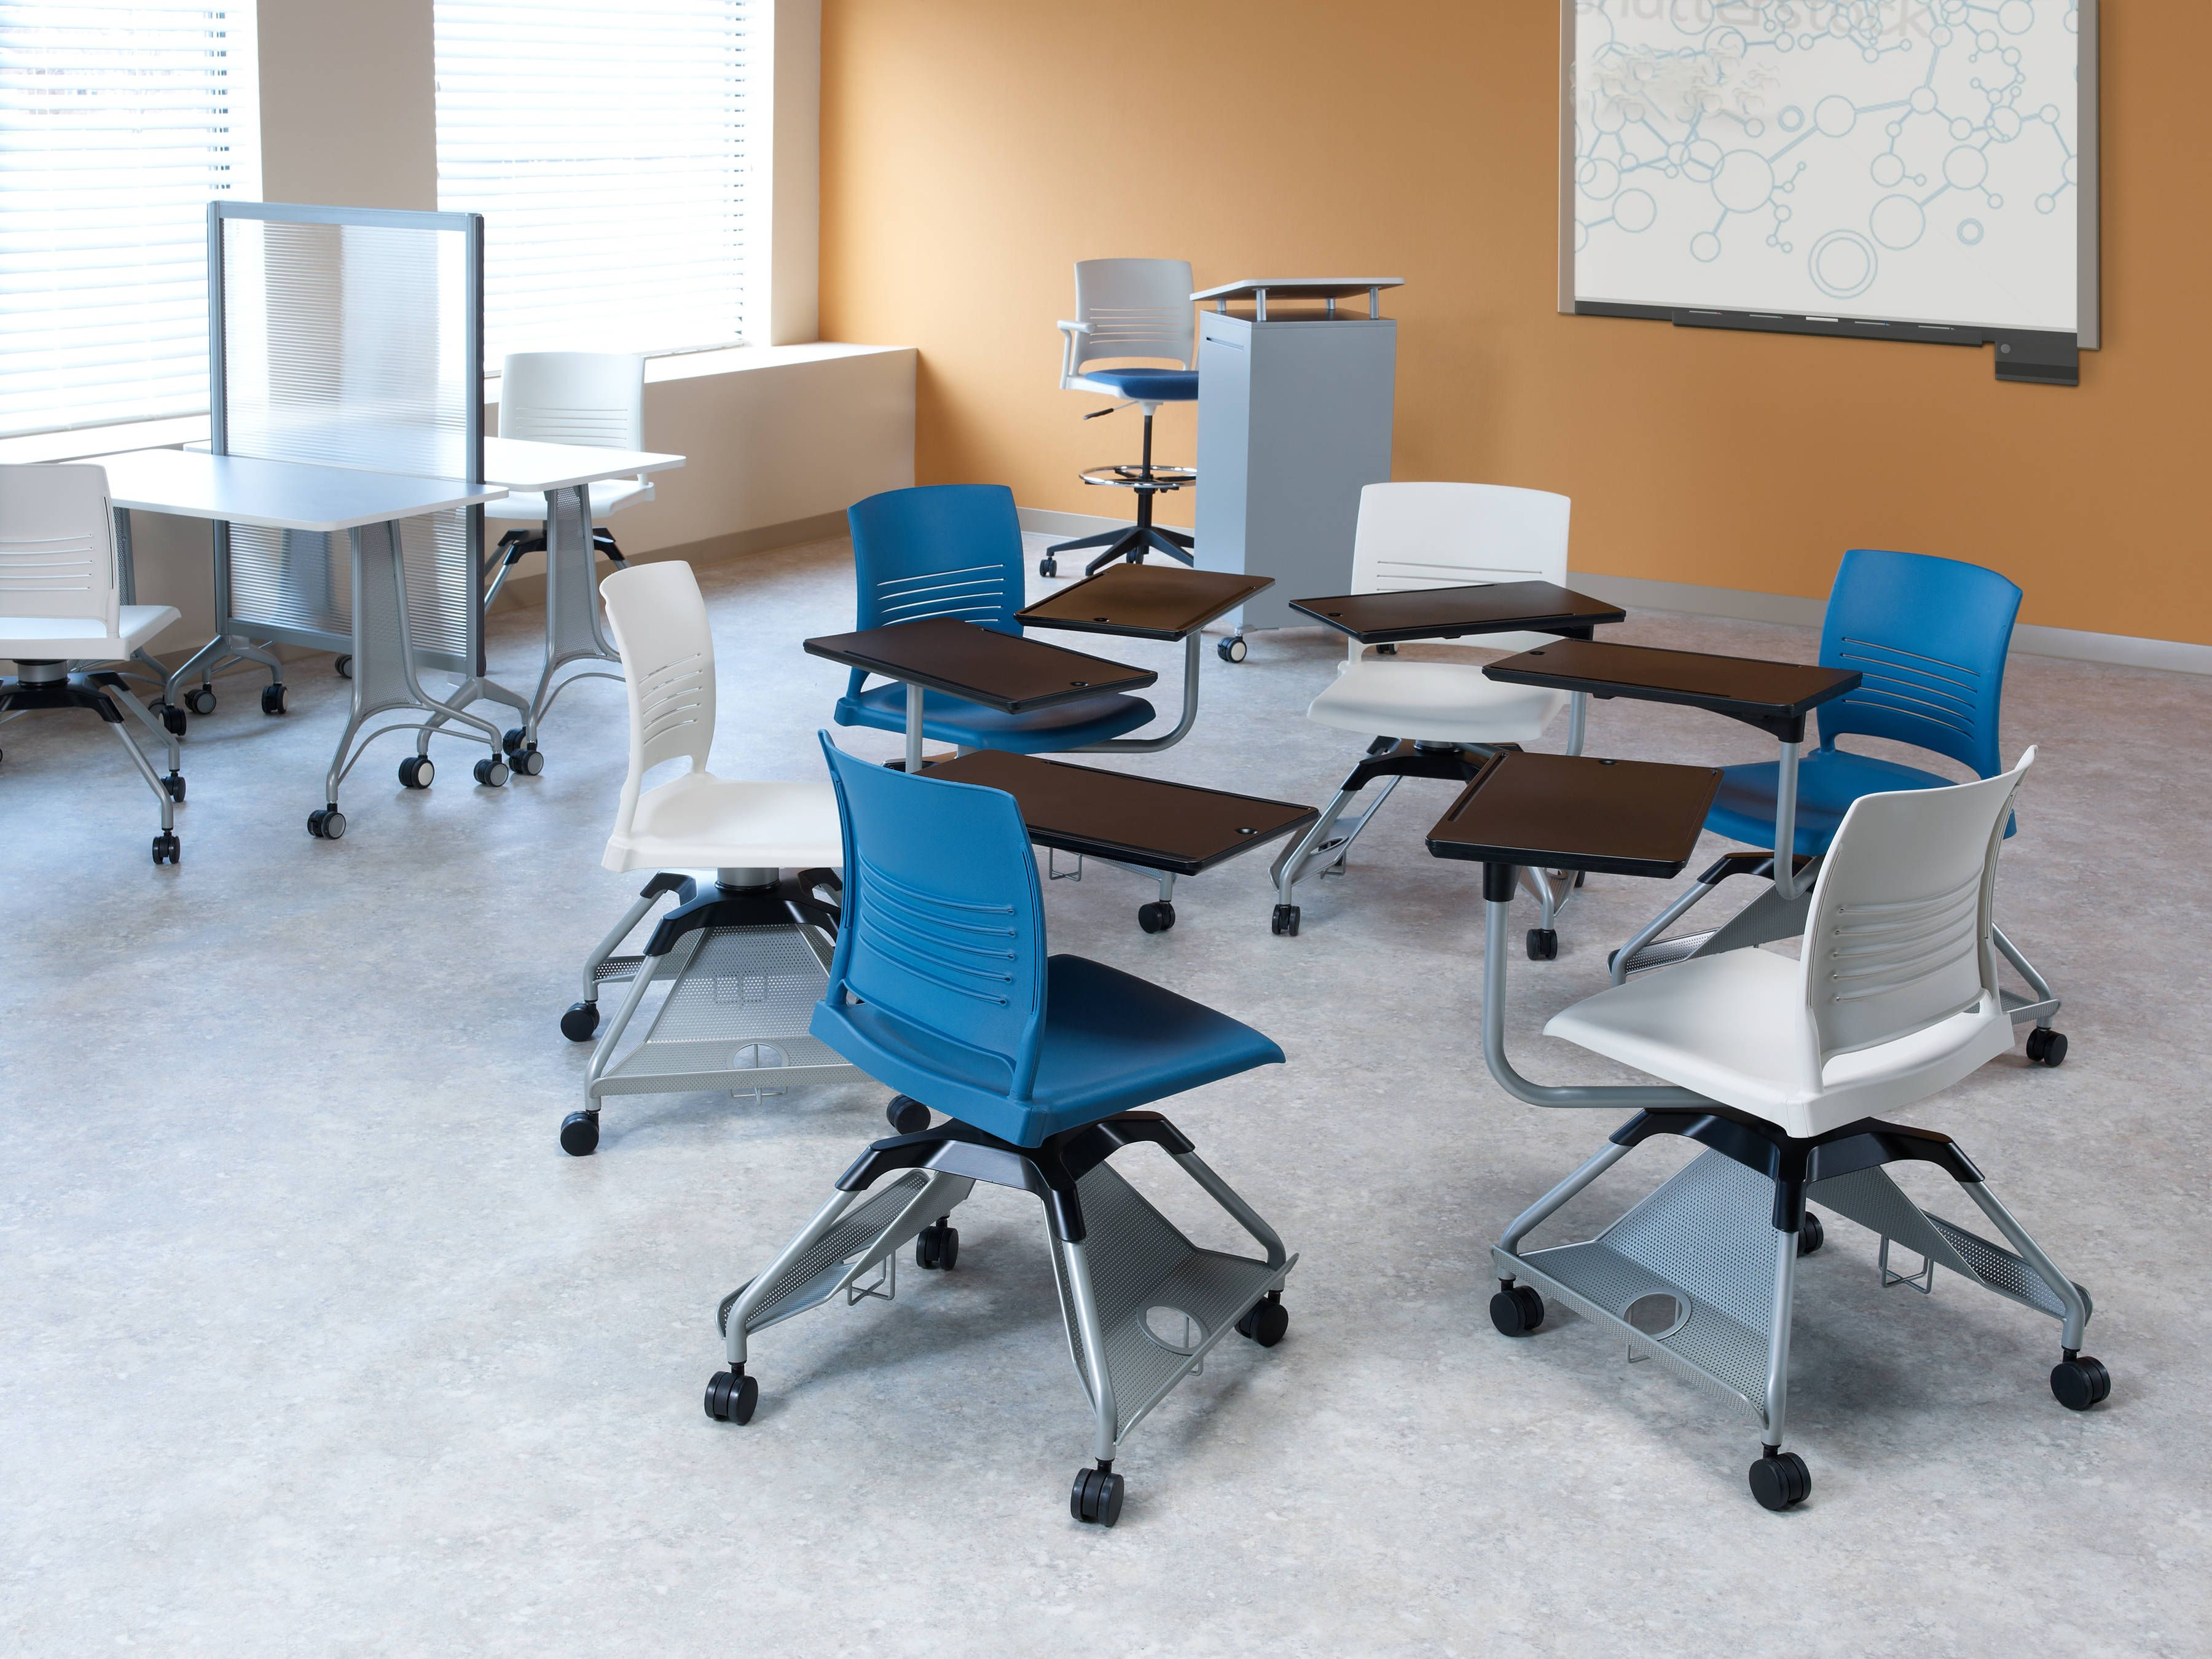 Ki Is The 1 Supplier Of Educational Furniture Solutions Learn